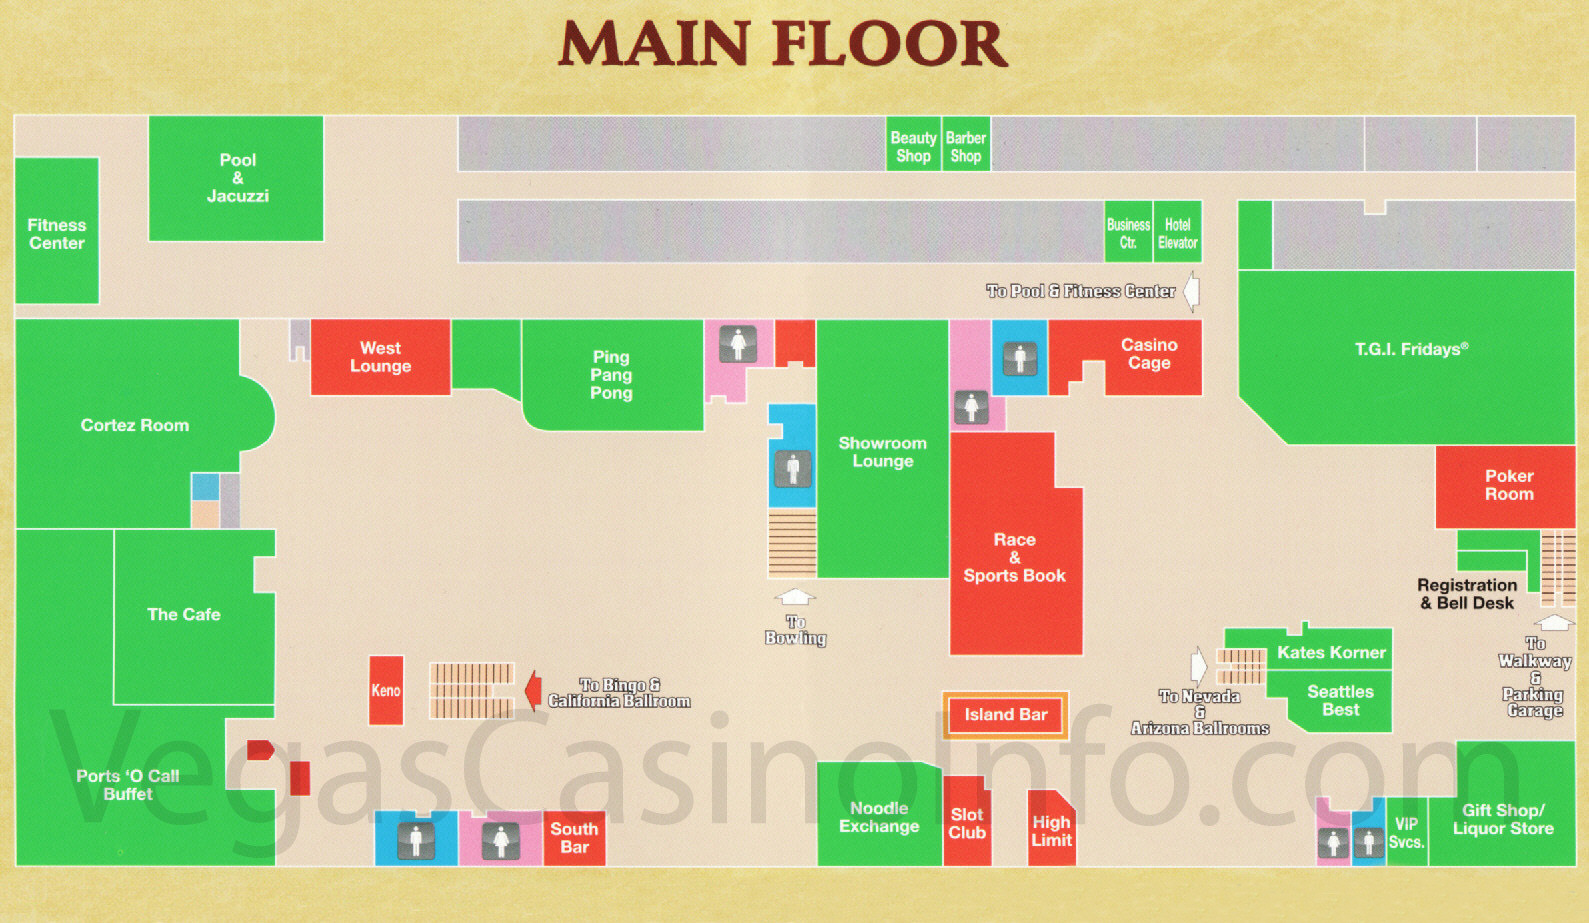 Las Vegas Casino Property Maps And Floor Plans VegasCasinoInfocom - Planet hollywood las vegas map